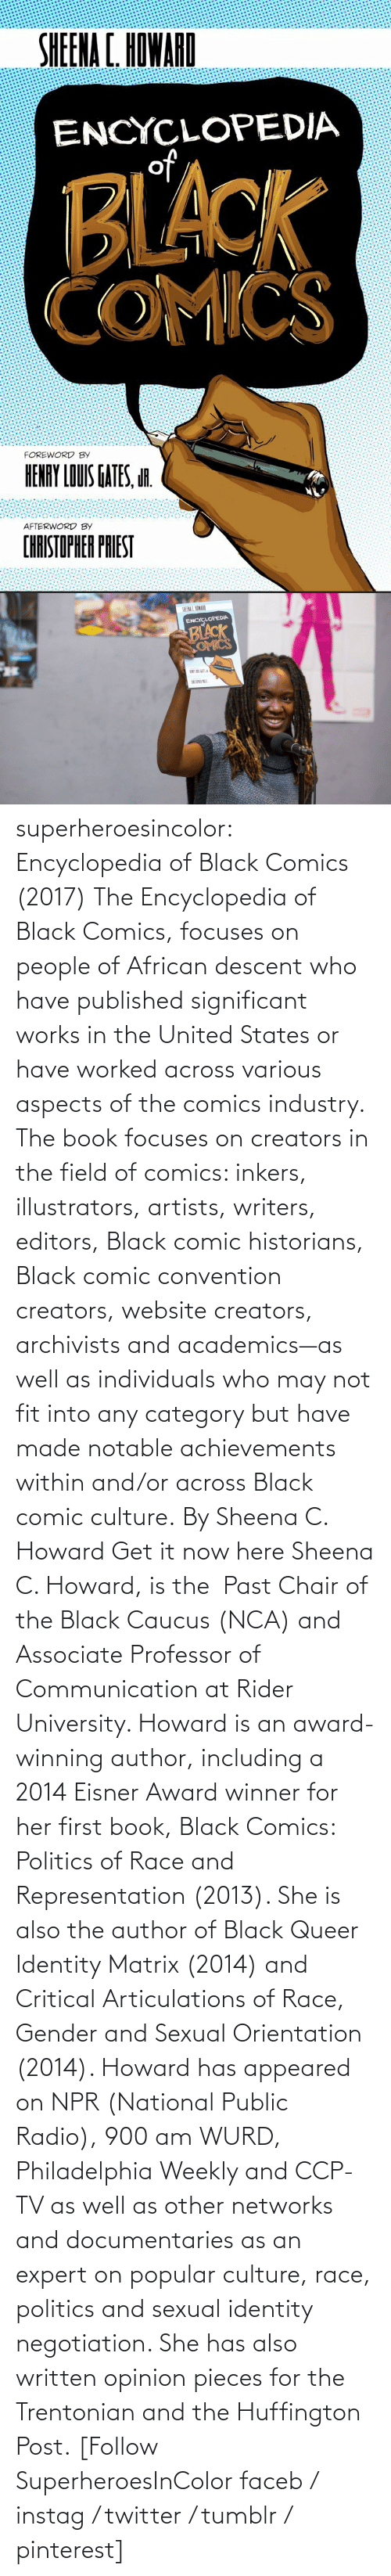 award: superheroesincolor: Encyclopedia of Black Comics (2017) The Encyclopedia of Black Comics, focuses on people of African descent who have published significant works in the United States or have worked across various aspects of the comics industry.  The book focuses on creators in the field of comics: inkers, illustrators, artists, writers, editors, Black comic historians, Black comic convention creators, website creators, archivists and academics—as well as individuals who may not fit into any category but have made notable achievements within and/or across Black comic culture. By Sheena C. Howard Get it now here  Sheena C. Howard, is the  Past Chair of the Black Caucus (NCA) and Associate Professor of Communication at Rider University. Howard is an award-winning author, including a 2014 Eisner Award winner for her first book, Black Comics: Politics of Race and Representation (2013). She is also the author of Black Queer Identity Matrix (2014) and Critical Articulations of Race, Gender and Sexual Orientation (2014). Howard has appeared on NPR (National Public Radio), 900 am WURD, Philadelphia Weekly and CCP-TV as well as other networks and documentaries as an expert on popular culture, race, politics and sexual identity negotiation. She has also written opinion pieces for the Trentonian and the Huffington Post.   [Follow SuperheroesInColor faceb / instag / twitter / tumblr / pinterest]